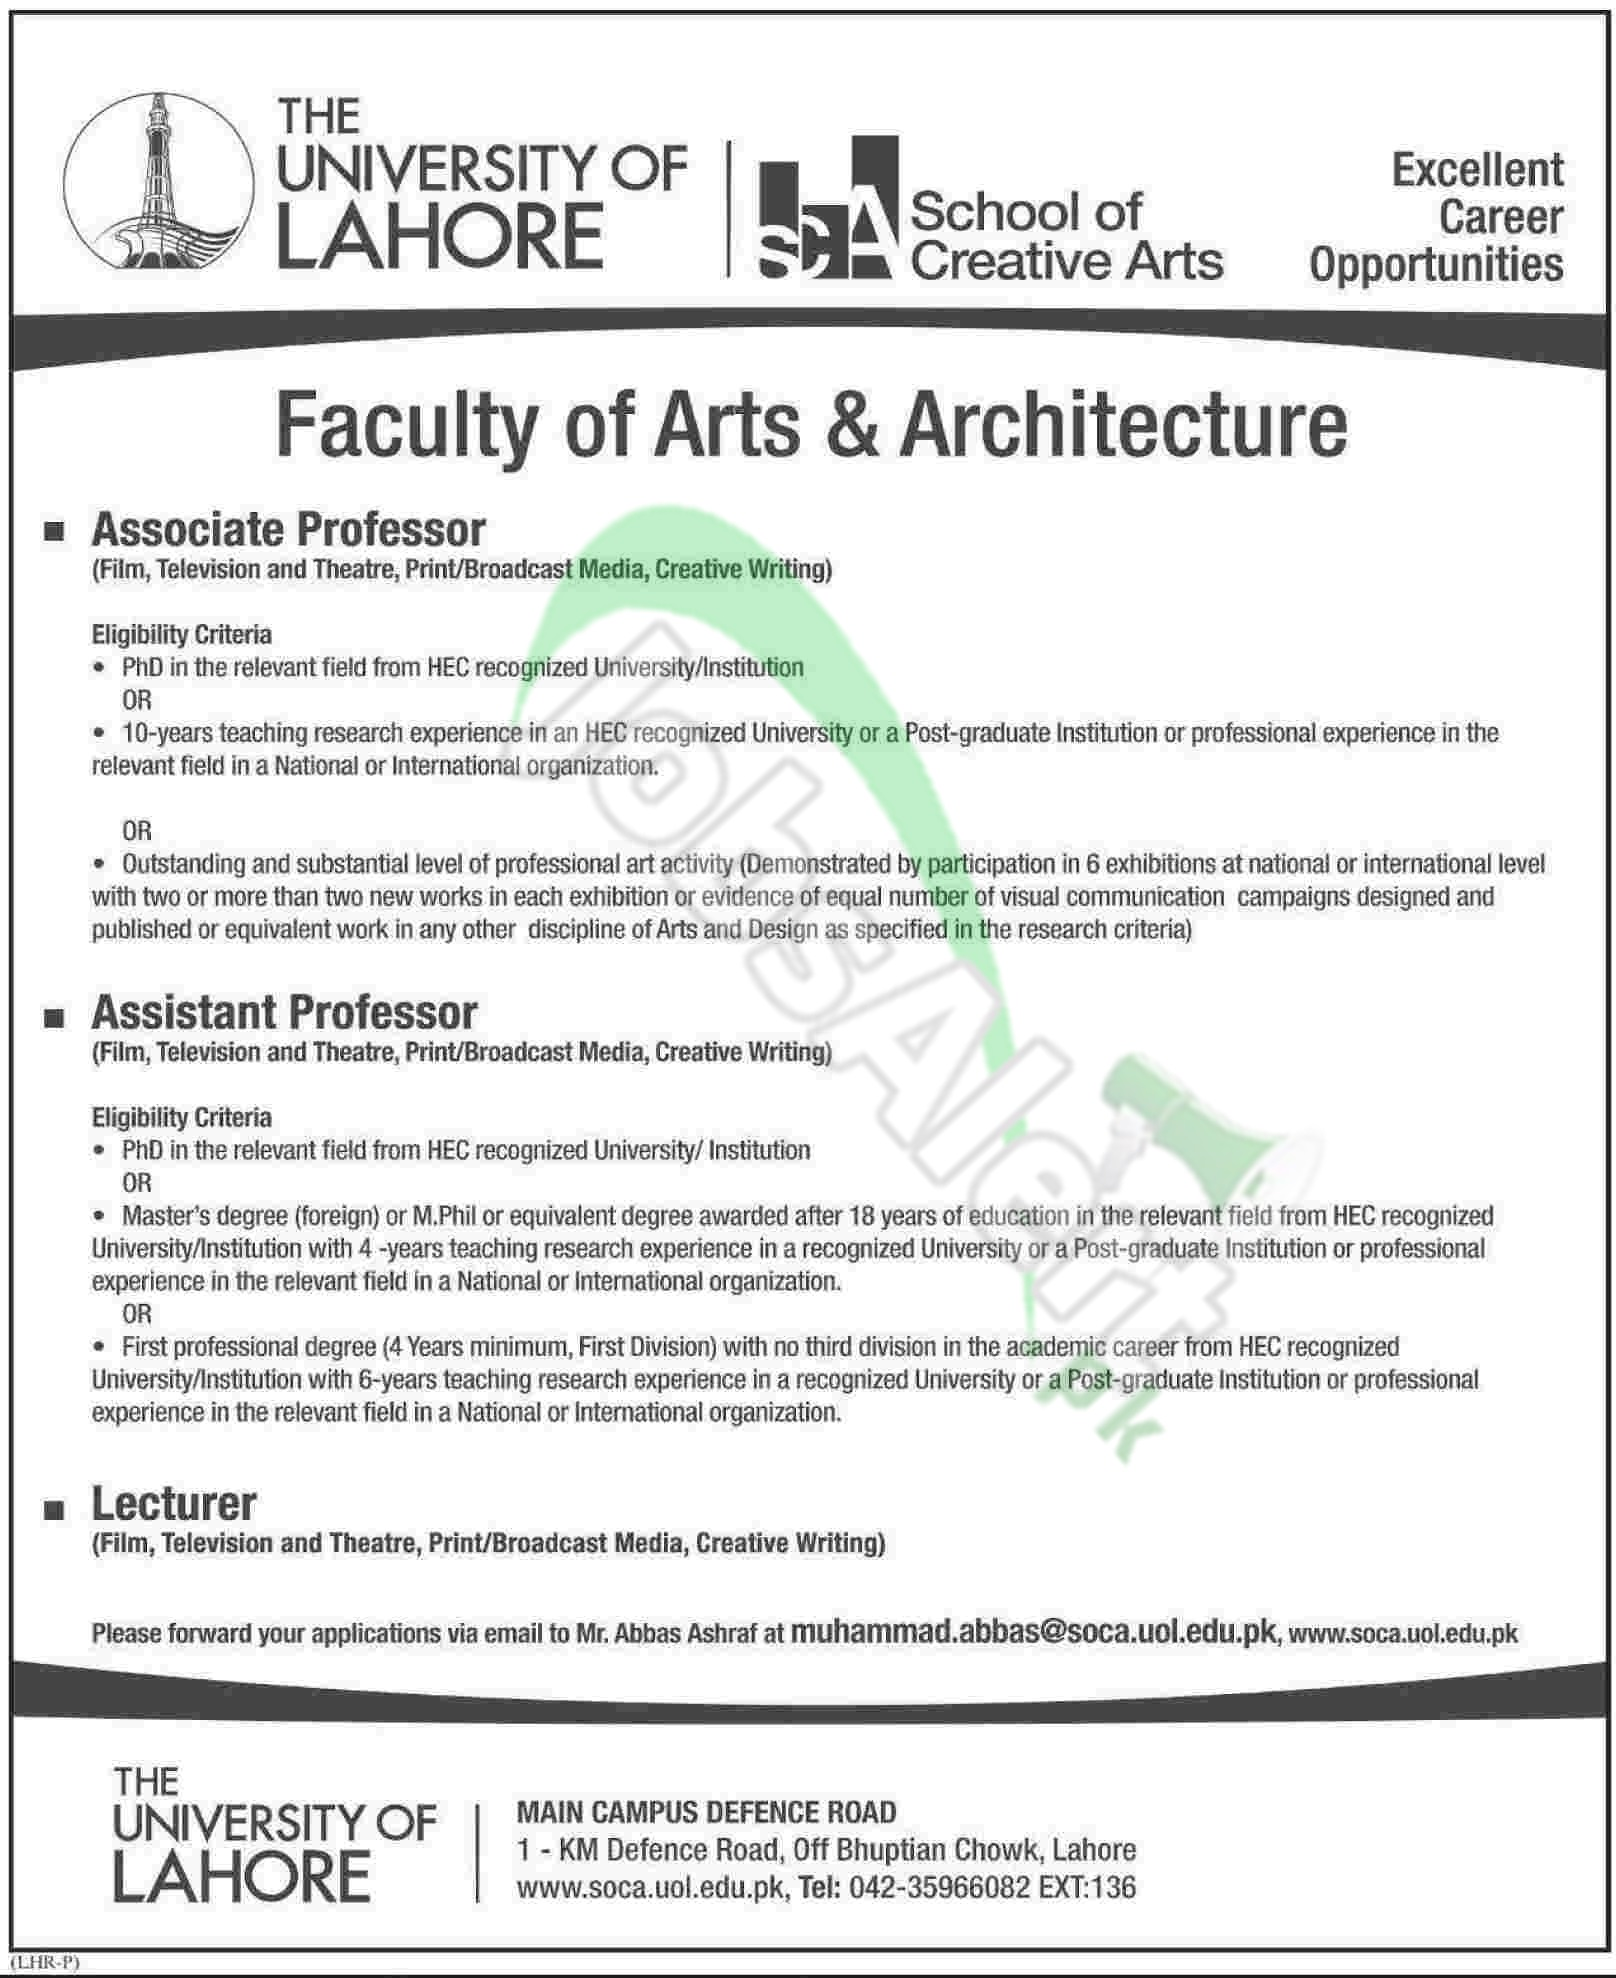 The University of Lahore (UOL) Lahore